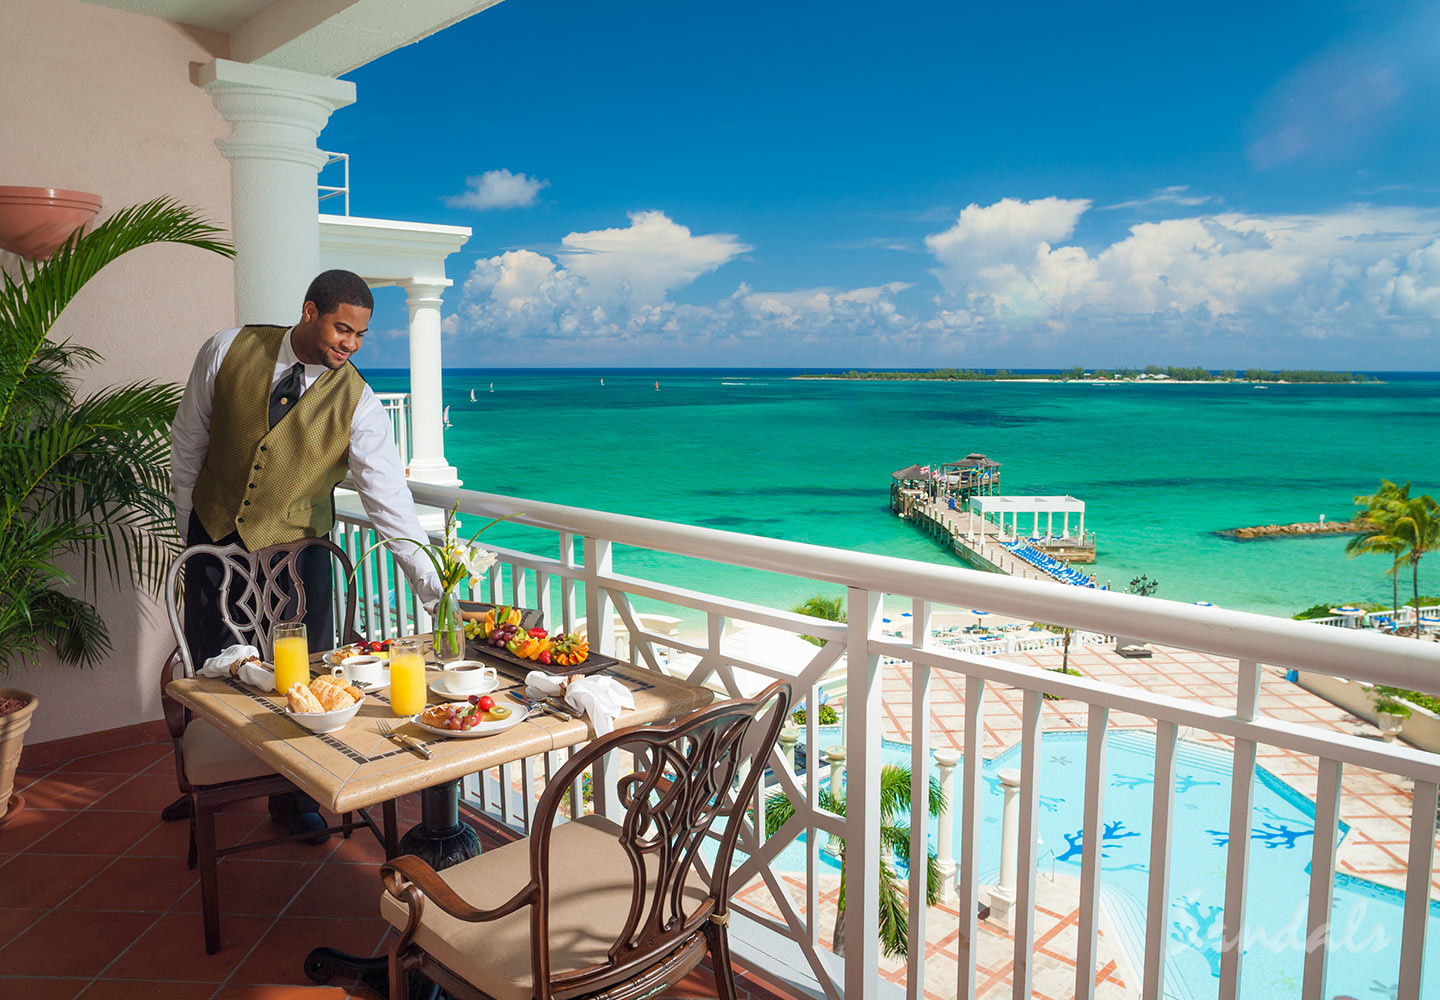 Travel Agency All-Inclusive Resort Sandals Royal Bahamian 039